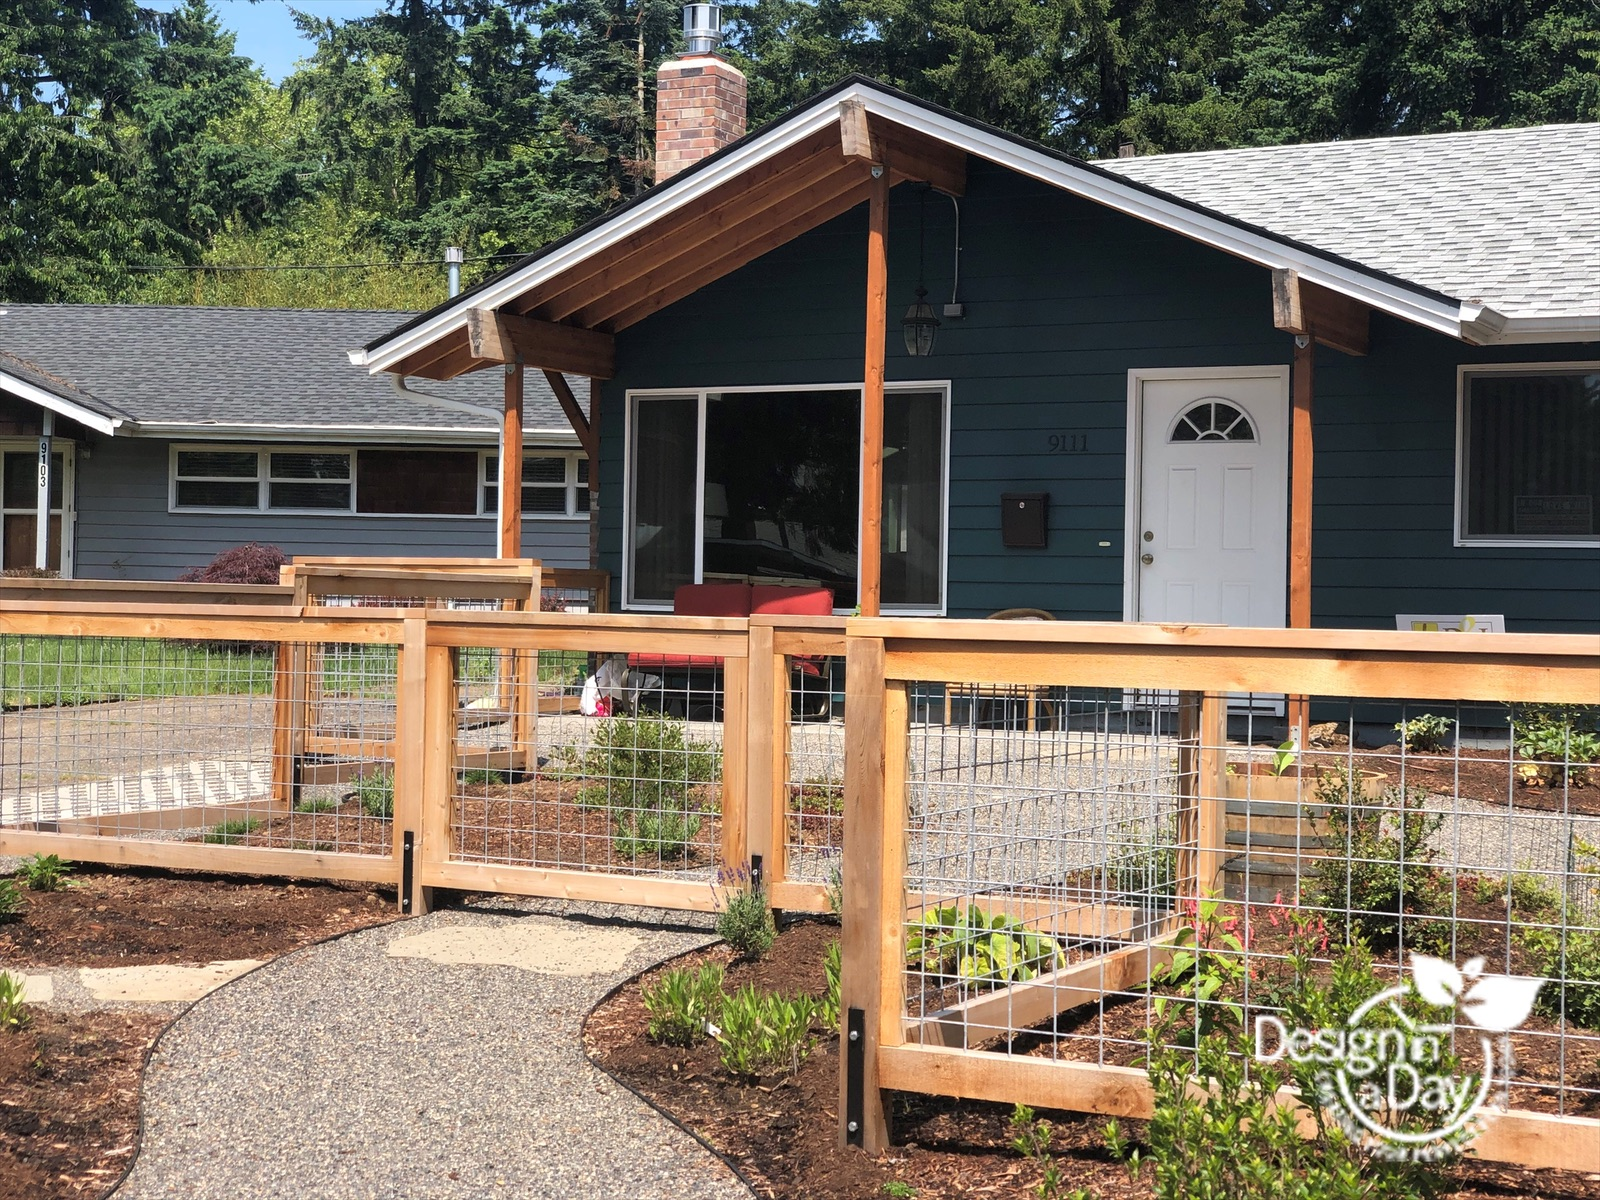 Portland front yard uses cedar fencing with metal panels, often called Cattle Panel or Hog wire Fence